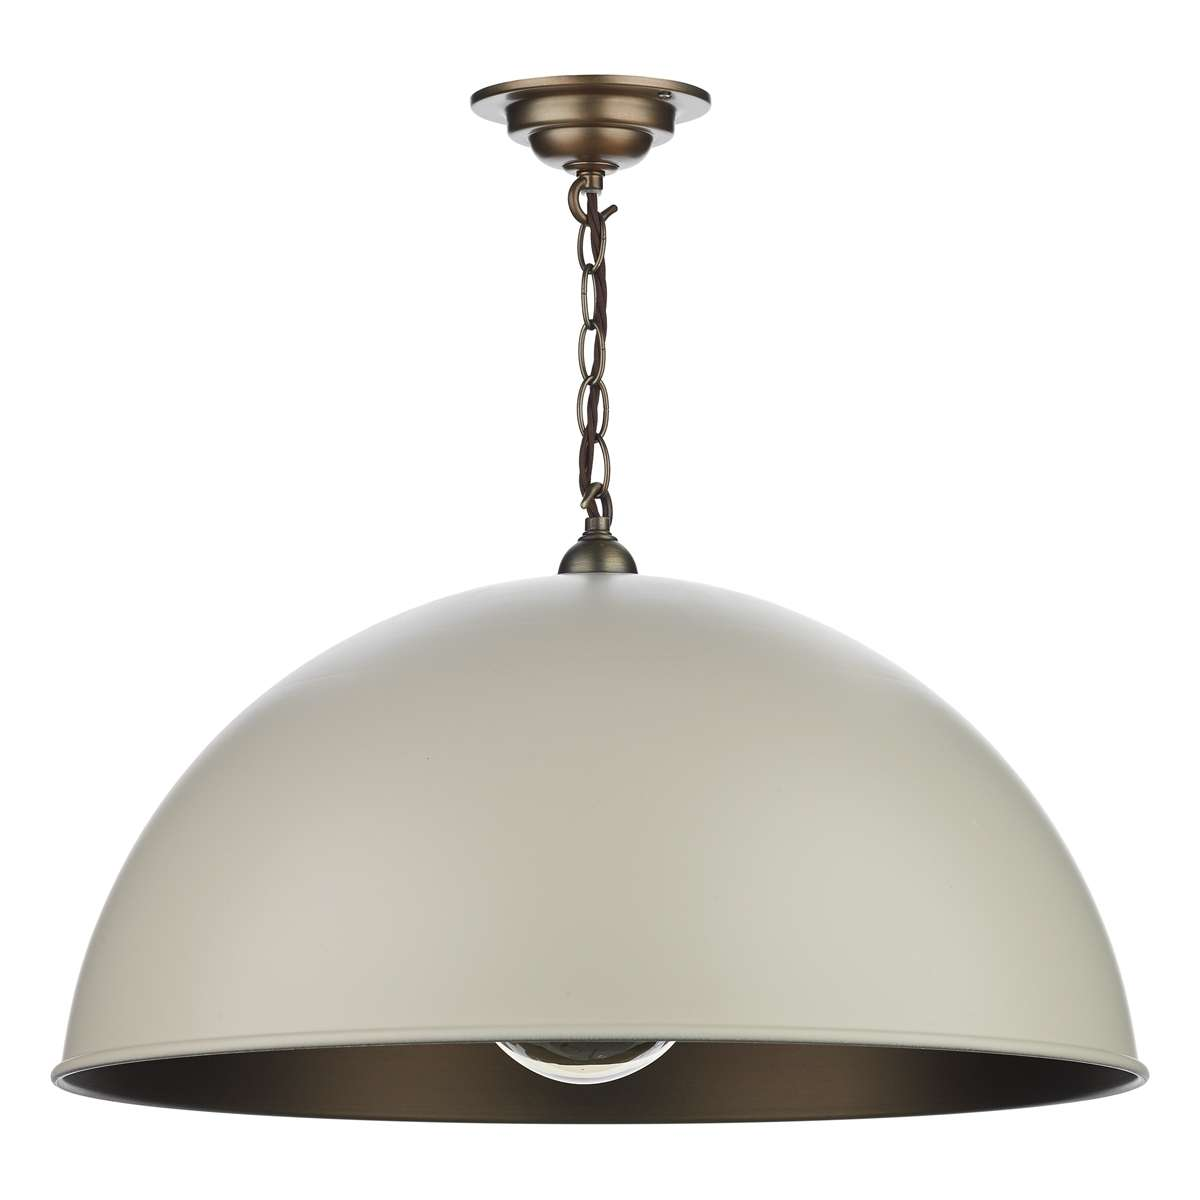 Ealing Large Pendant in Cotswold Cream